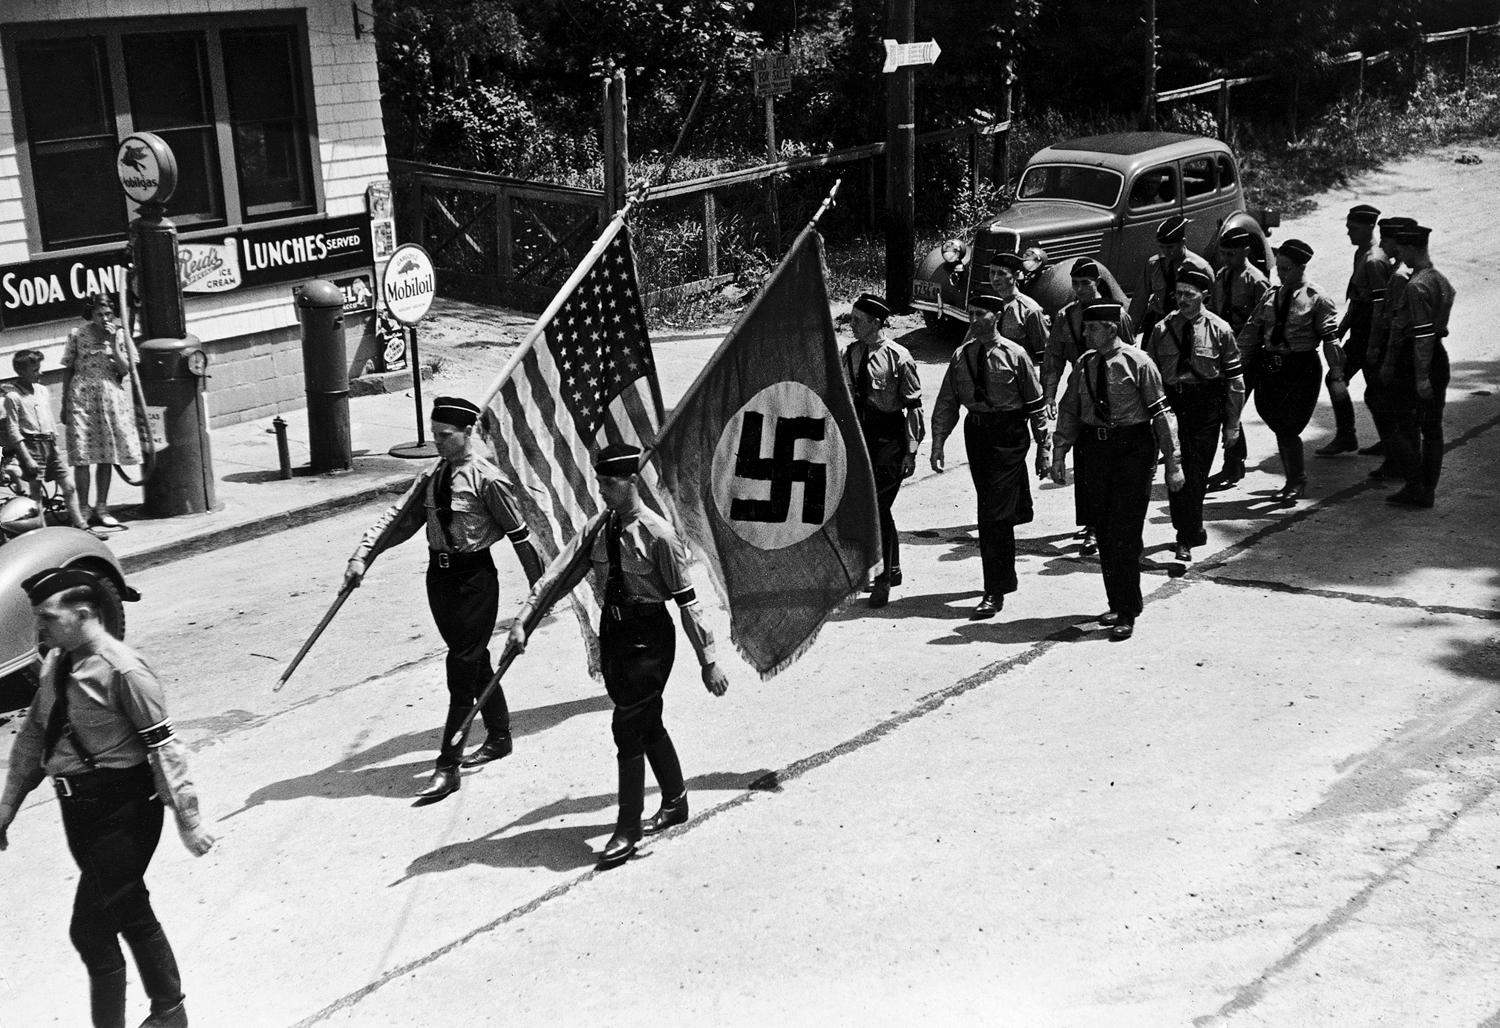 https://api.time.com/wp-content/uploads/2014/09/140917-american-nazi-party-1937.jpg?quality=85